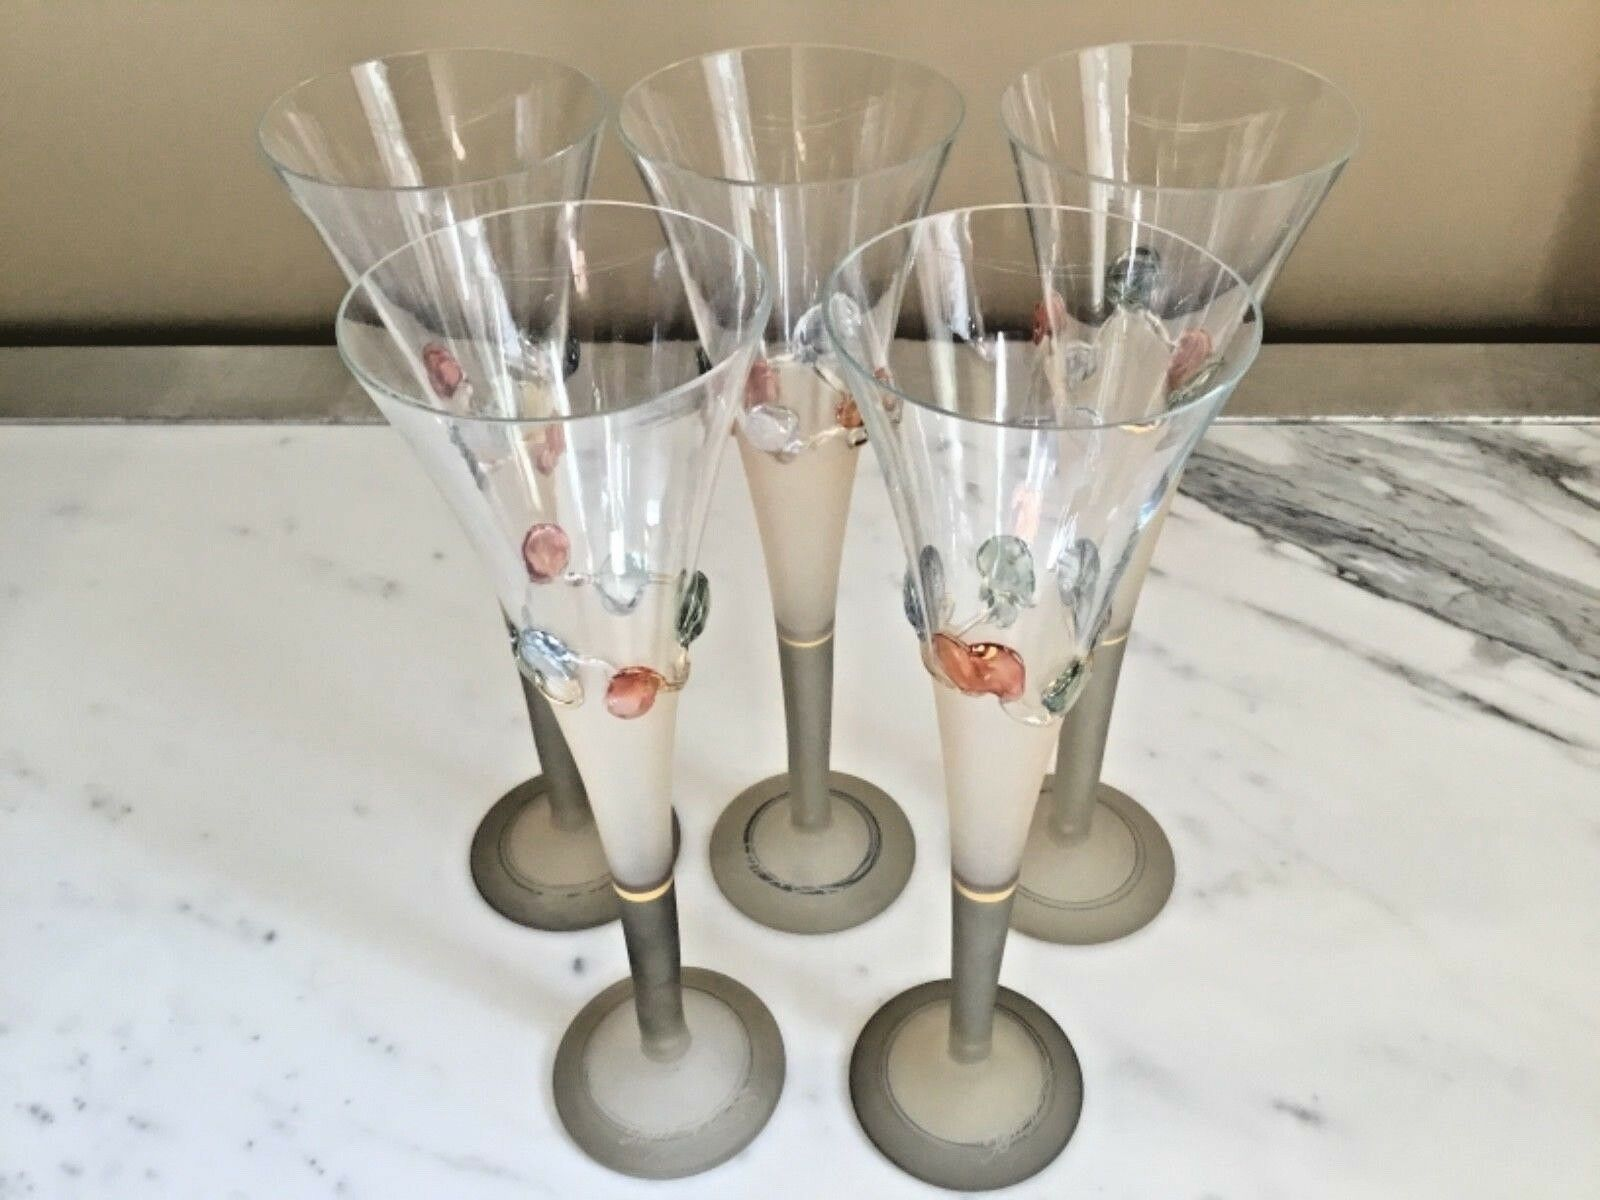 Set of 5Ion Tamaian Signed Blown Art Glass Champagne FlutesCOA Included